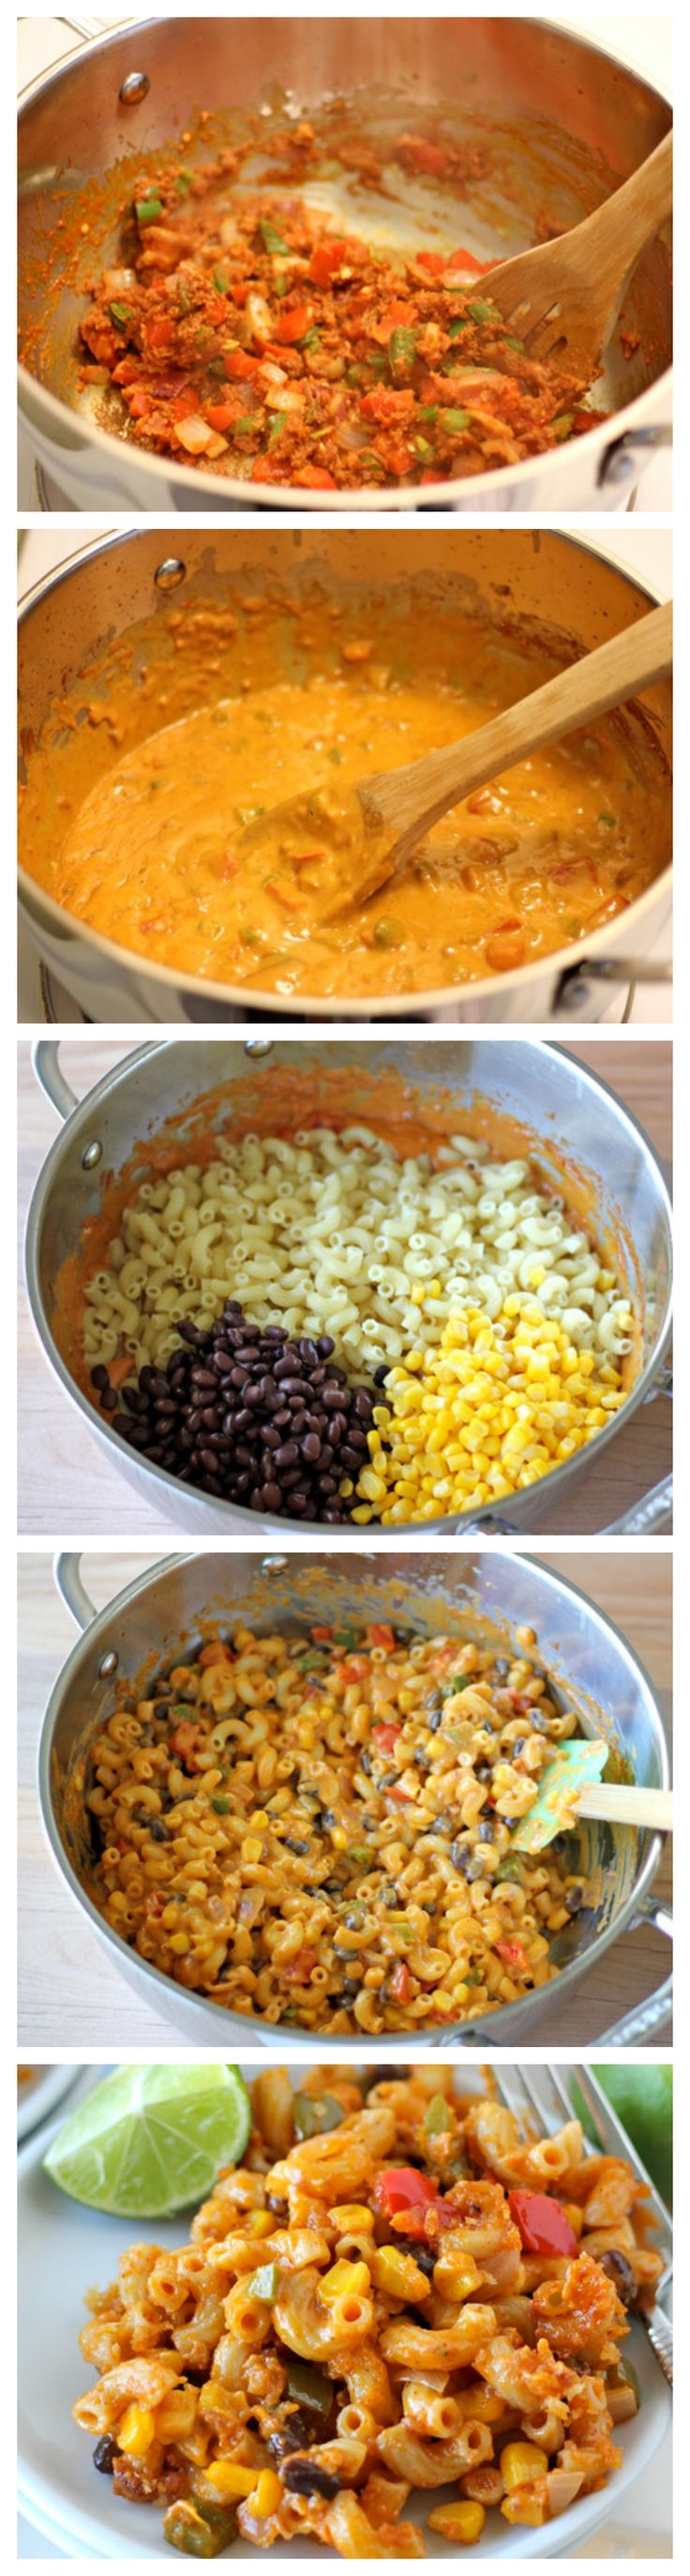 Chorizo Mac and Cheese - Mexican-style, veggie-loaded mac and cheese the whole family will love!